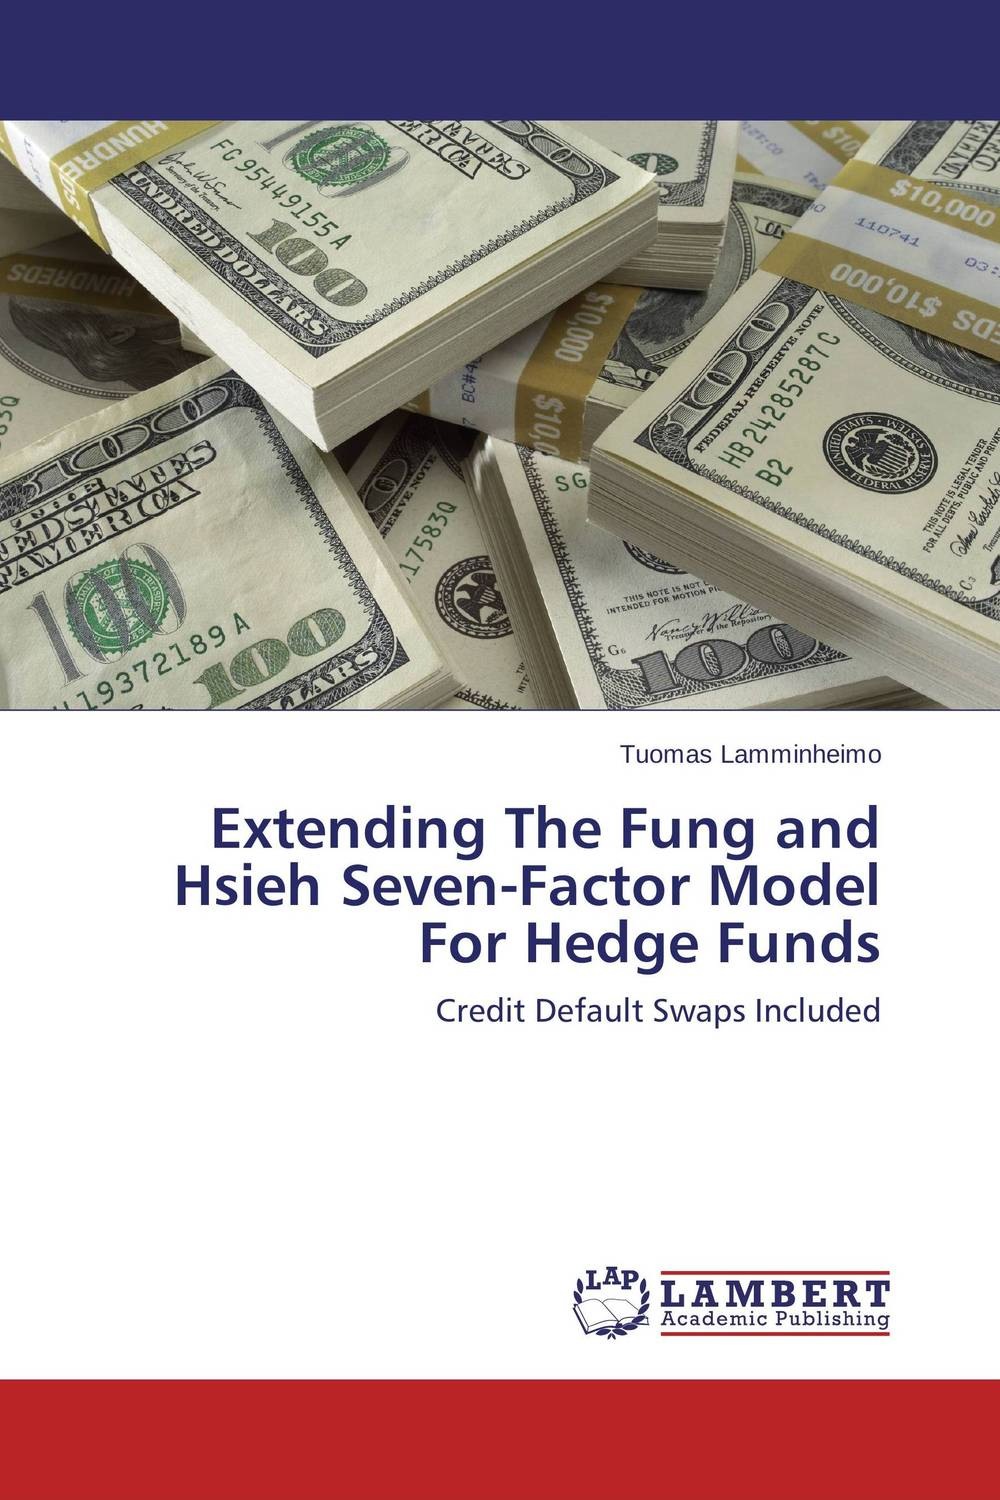 Extending The Fung and Hsieh Seven-Factor Model For Hedge Funds the mountain poems of hsieh ling–yun